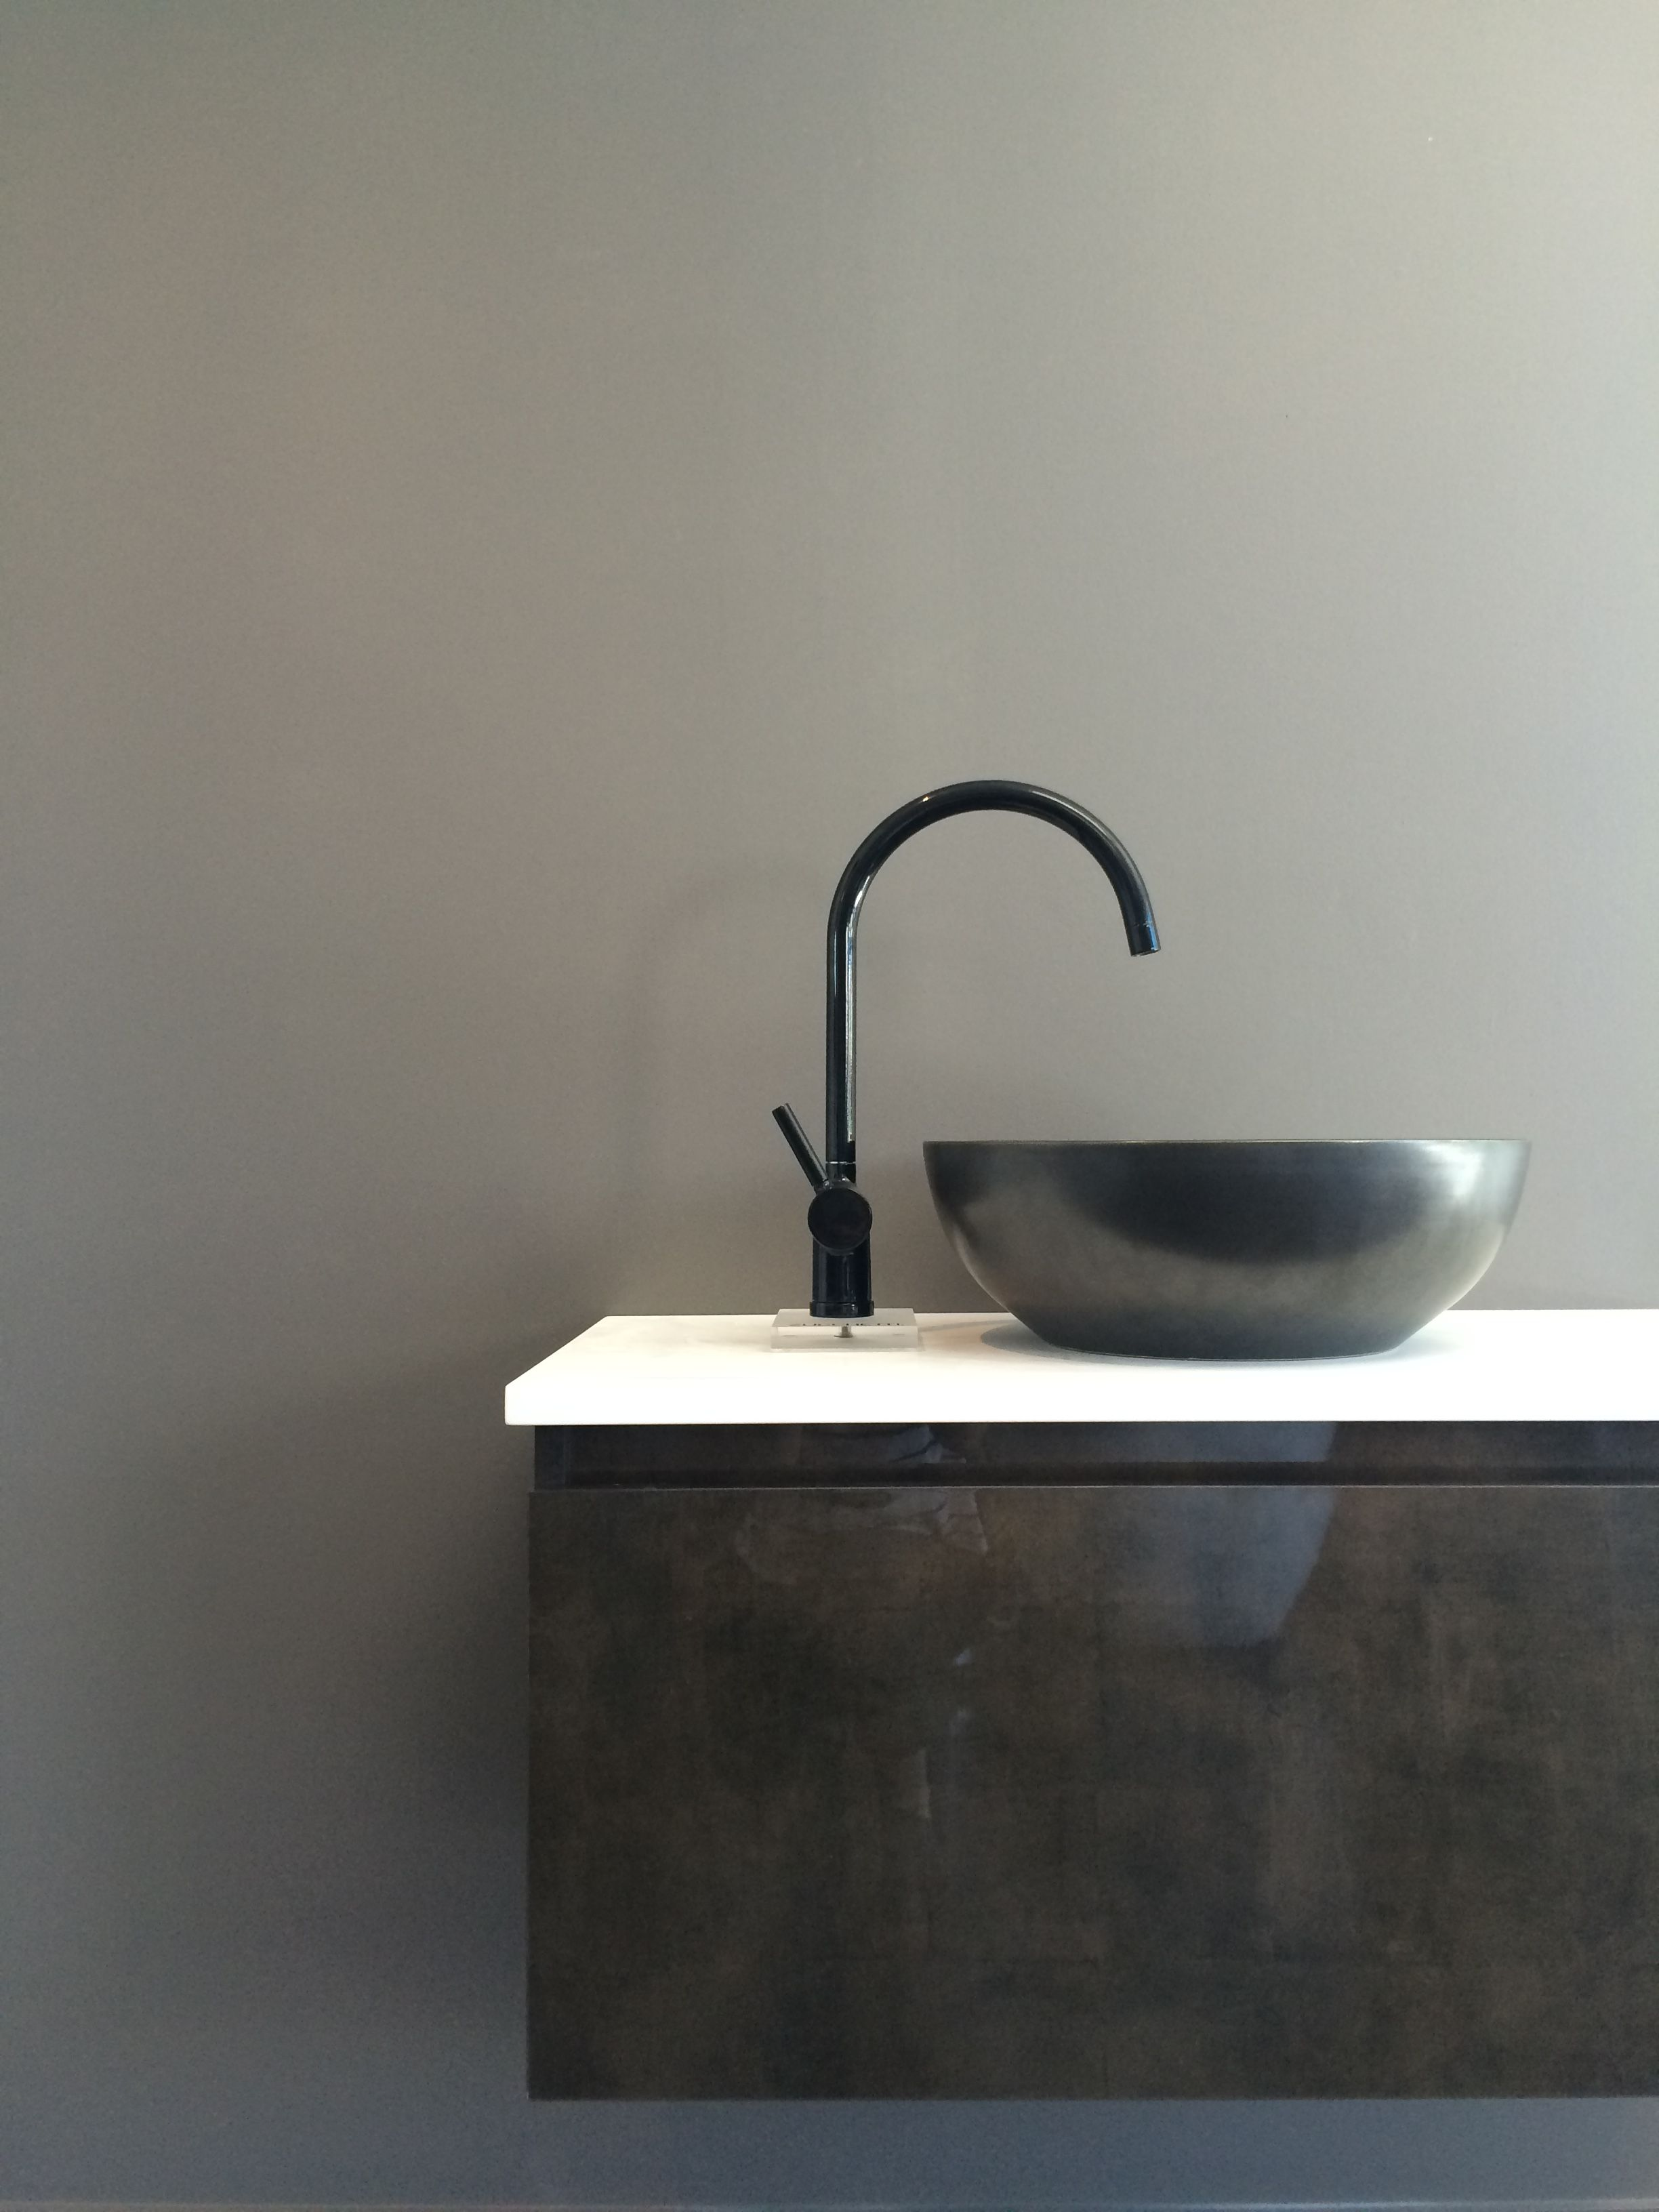 Bagnodesign Basin Taps Robertson Auckland Showroom Pan Mixer In Black By Zucchetti